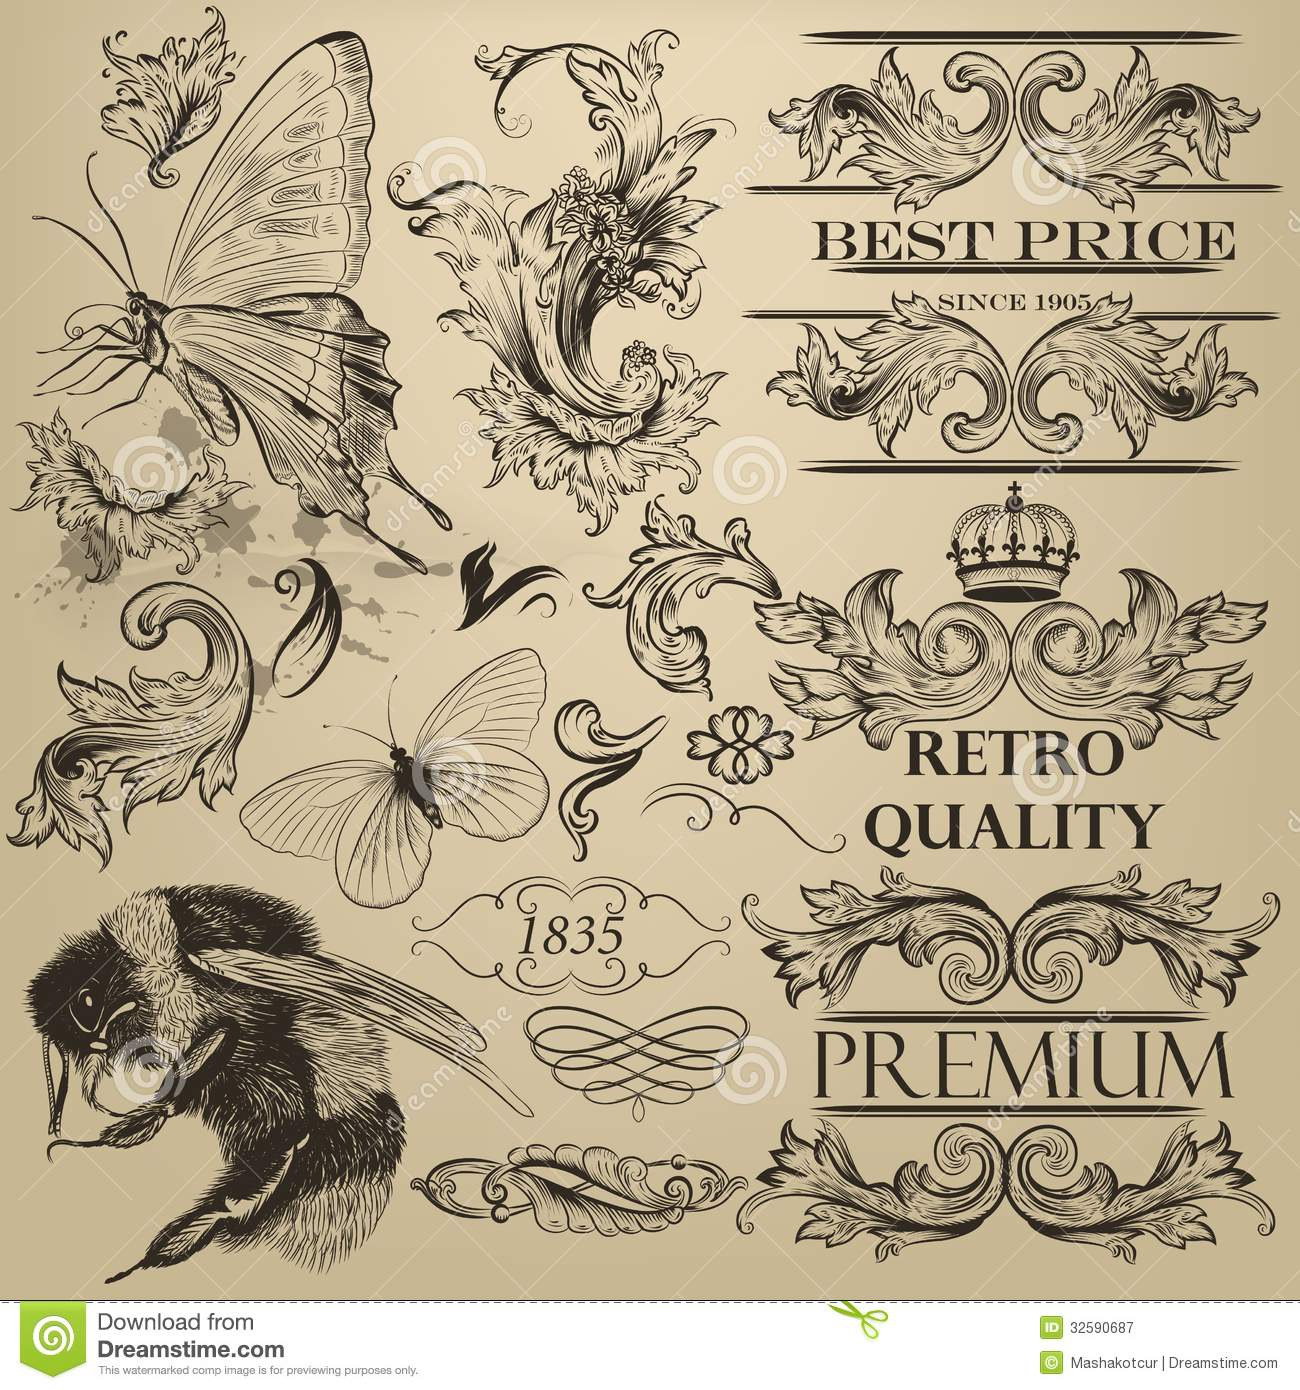 Vintage Vector Decorative Elements For Design Royalty Free Stock ...